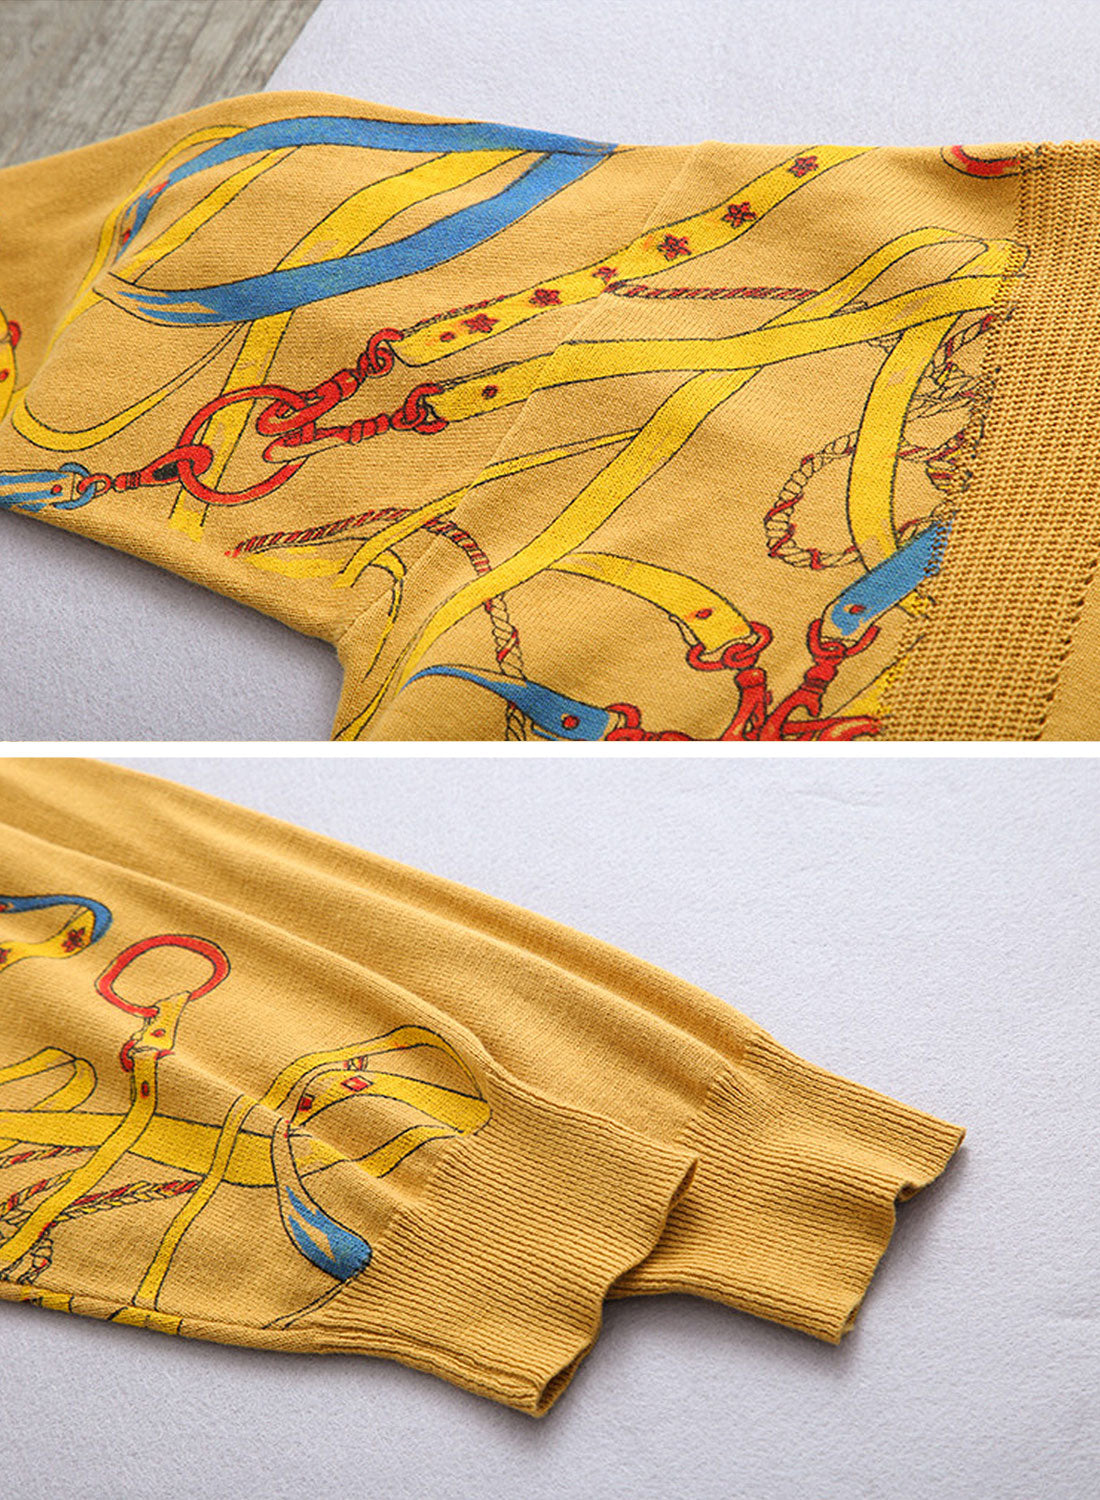 Stitching Sweaters with Side Printing Details 2